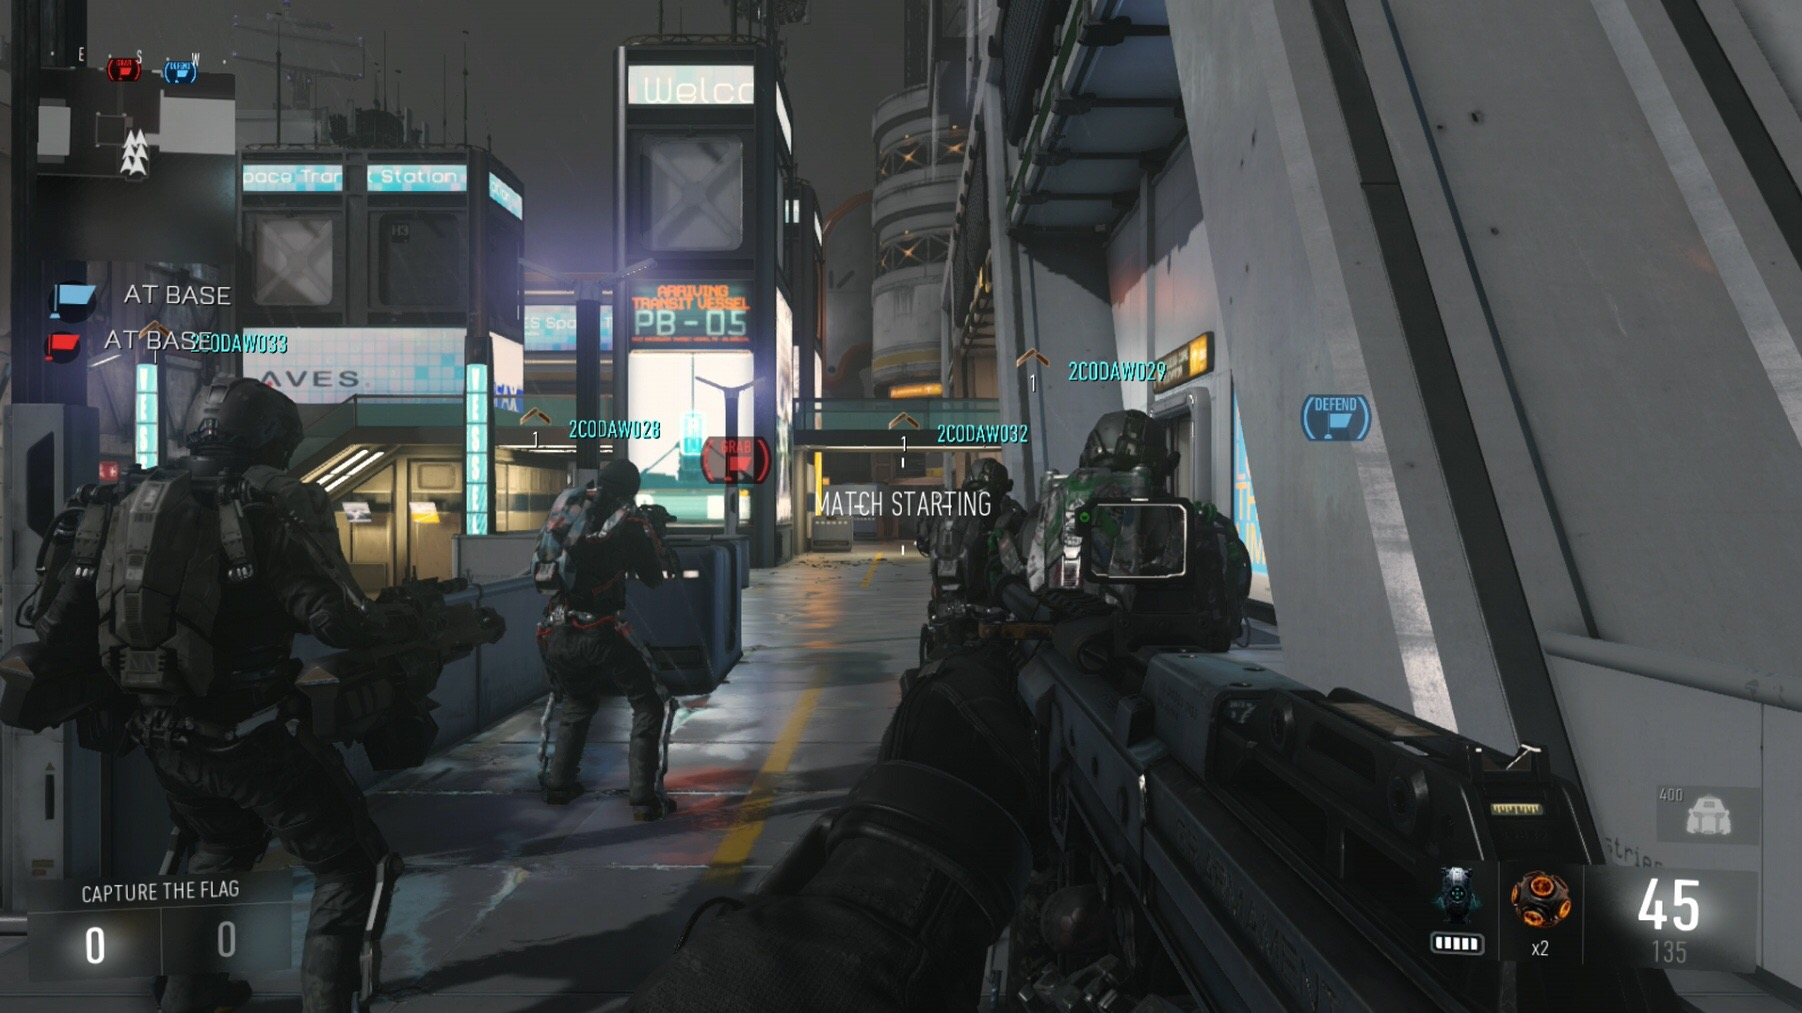 How to report players in Call of Duty: Advanced Warfare